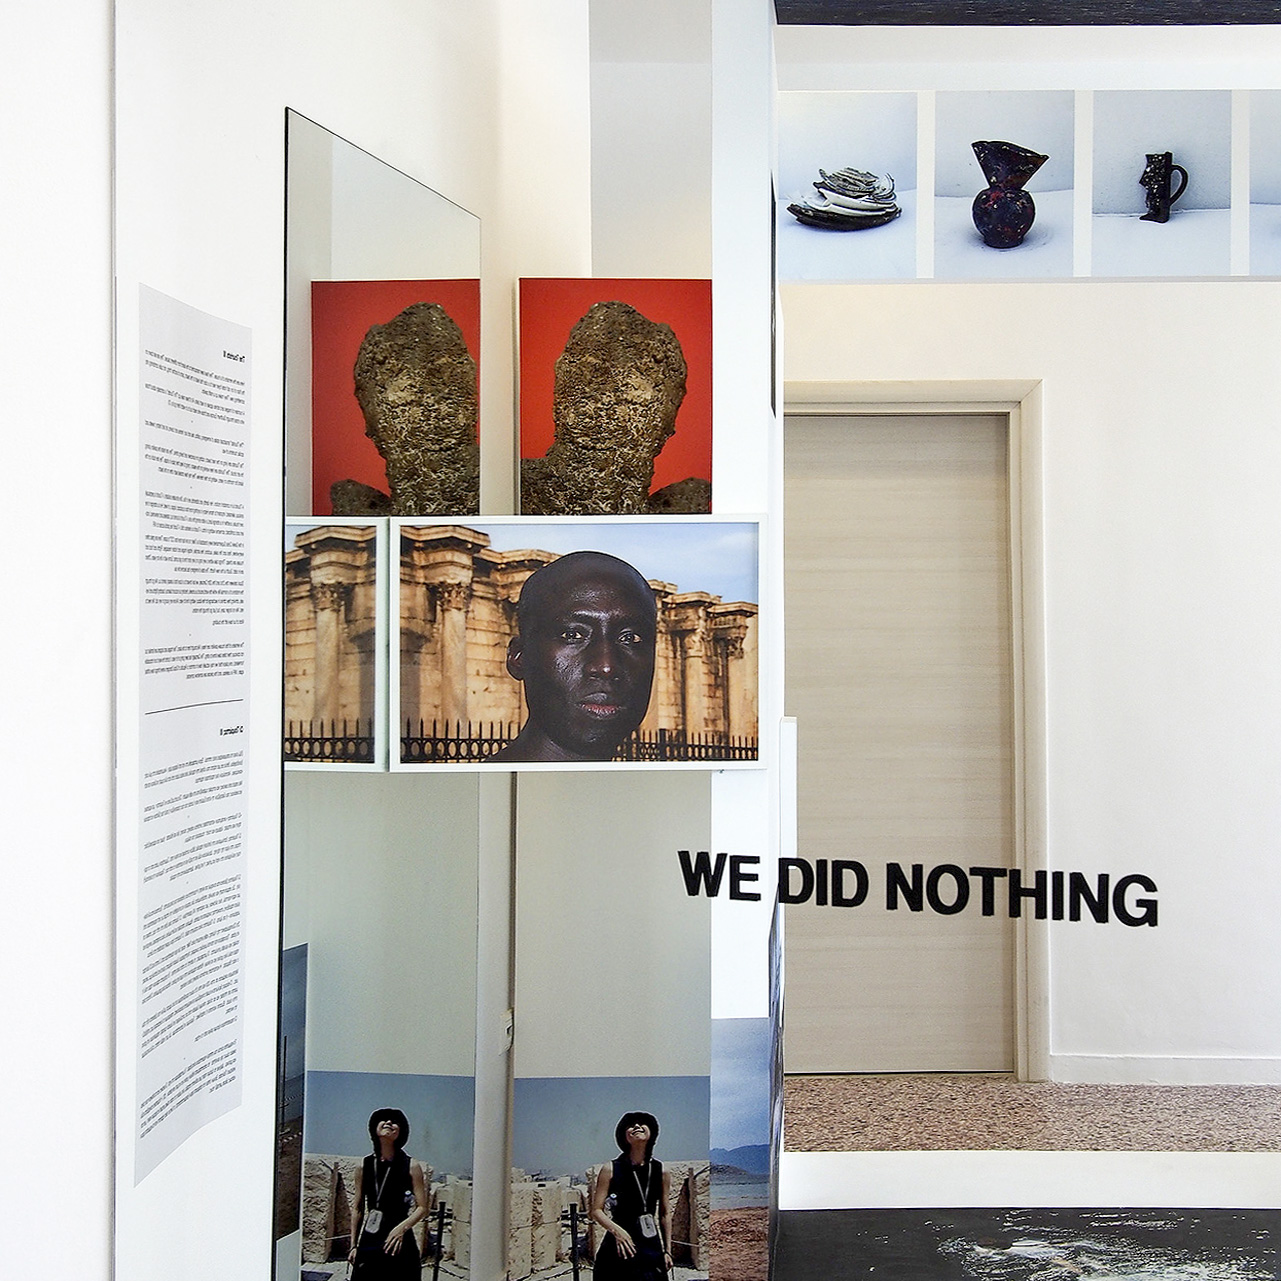 exhibition   «13,700,000 km3», curated by Katerina Gregos, Art Space Pythagorion, Samos, Greece. maria mavropoulou